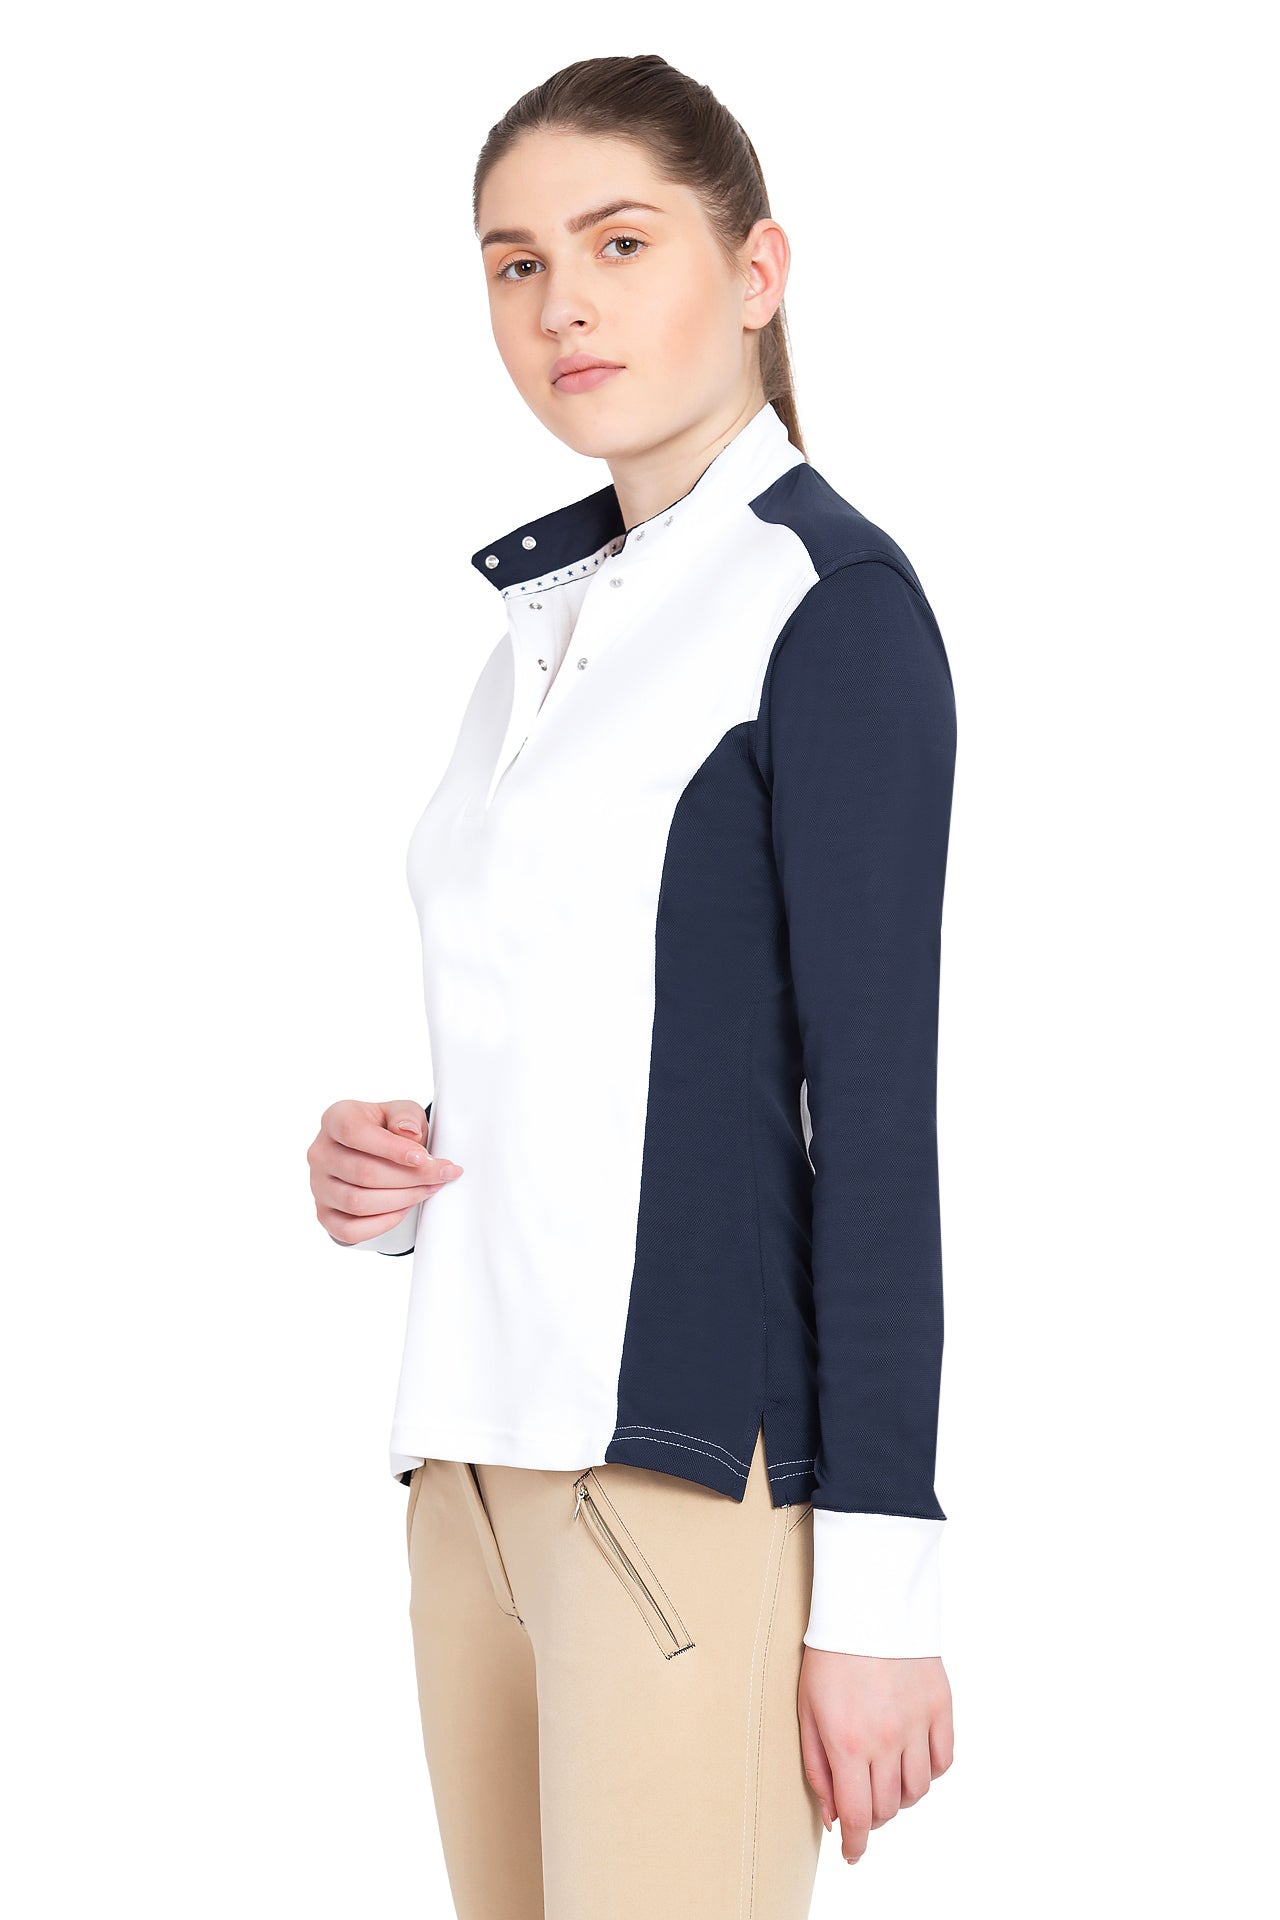 George H Morris Ladies Champion Long Sleeve Show Shirt_1524